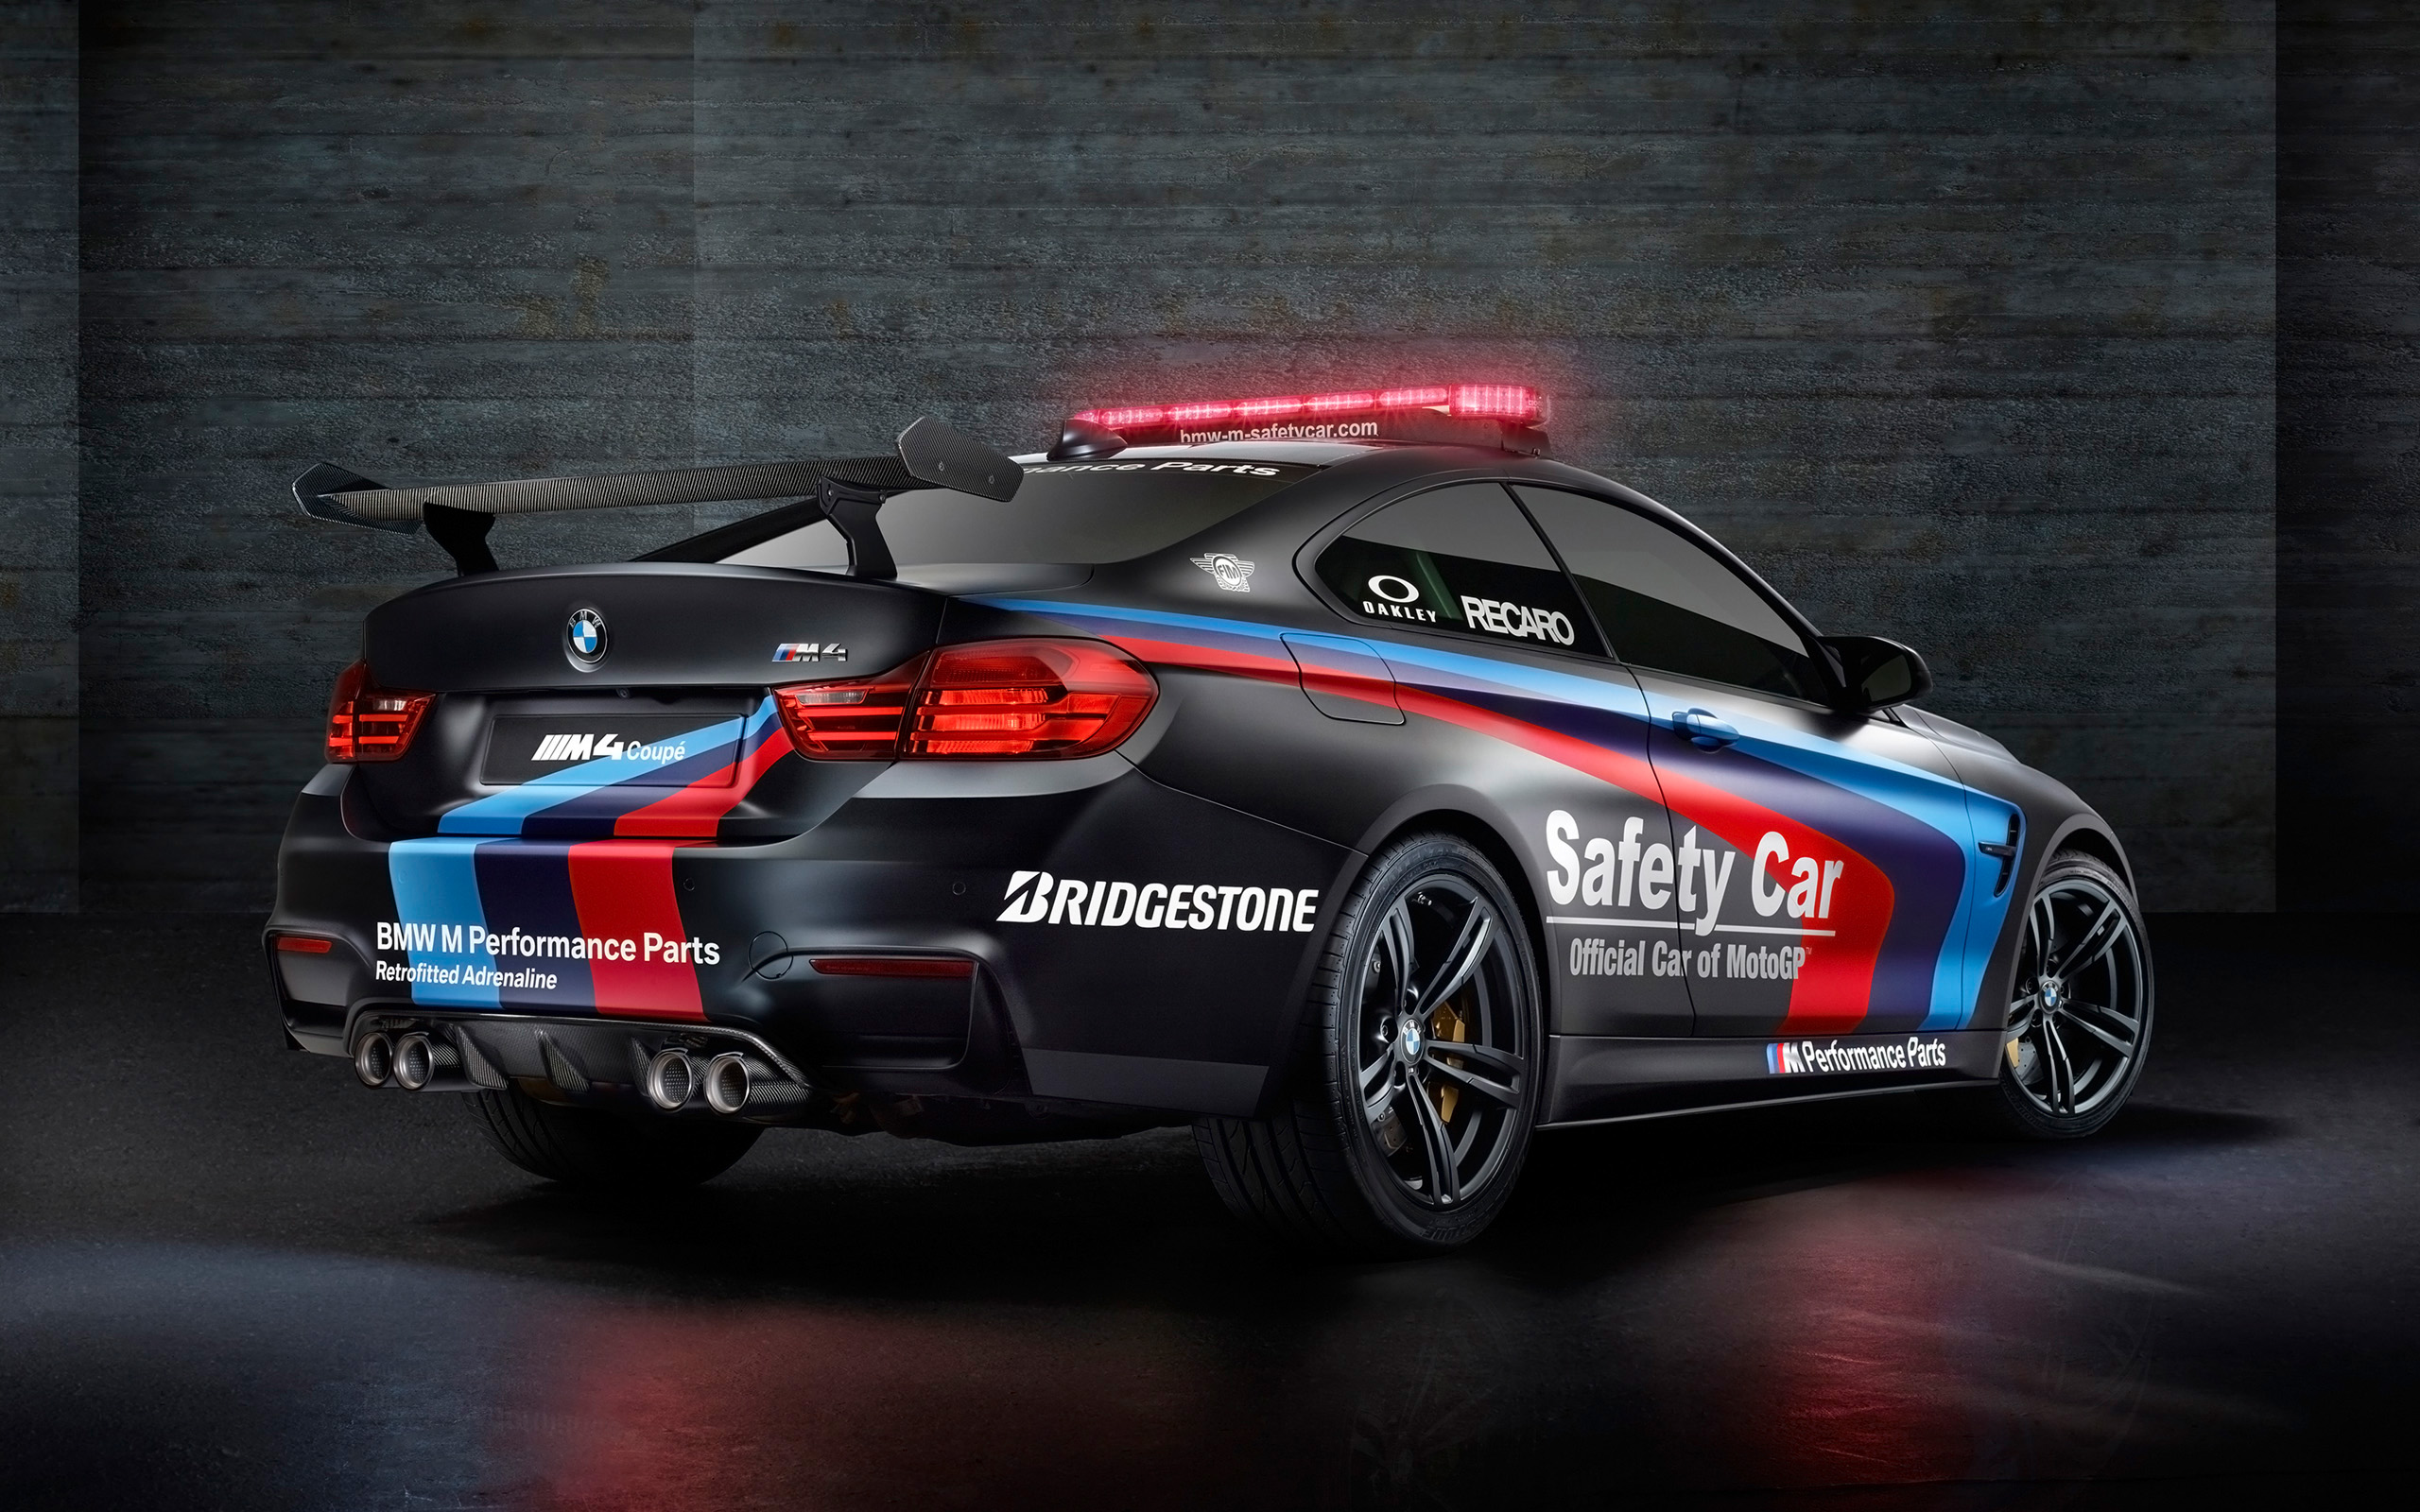 2015 BMW M4 MotoGP Safety Car 3 Wallpaper | HD Car Wallpapers